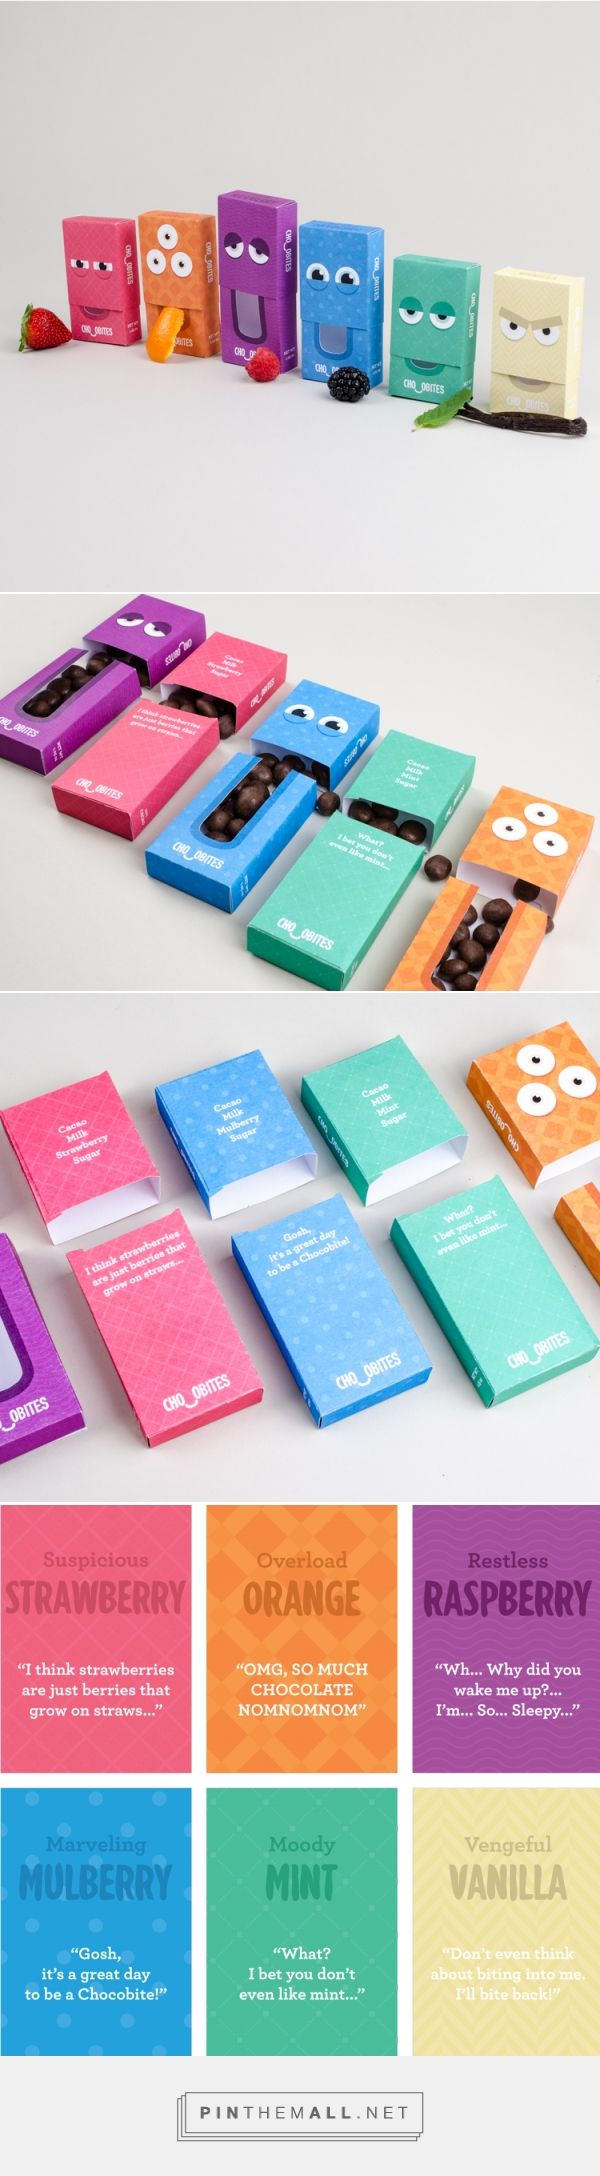 Chocobites (Student Project) - Packaging of the World - Creative Package Design Gallery - http://www.packagingoftheworld.com/2016/07/chocobites-student-project.html